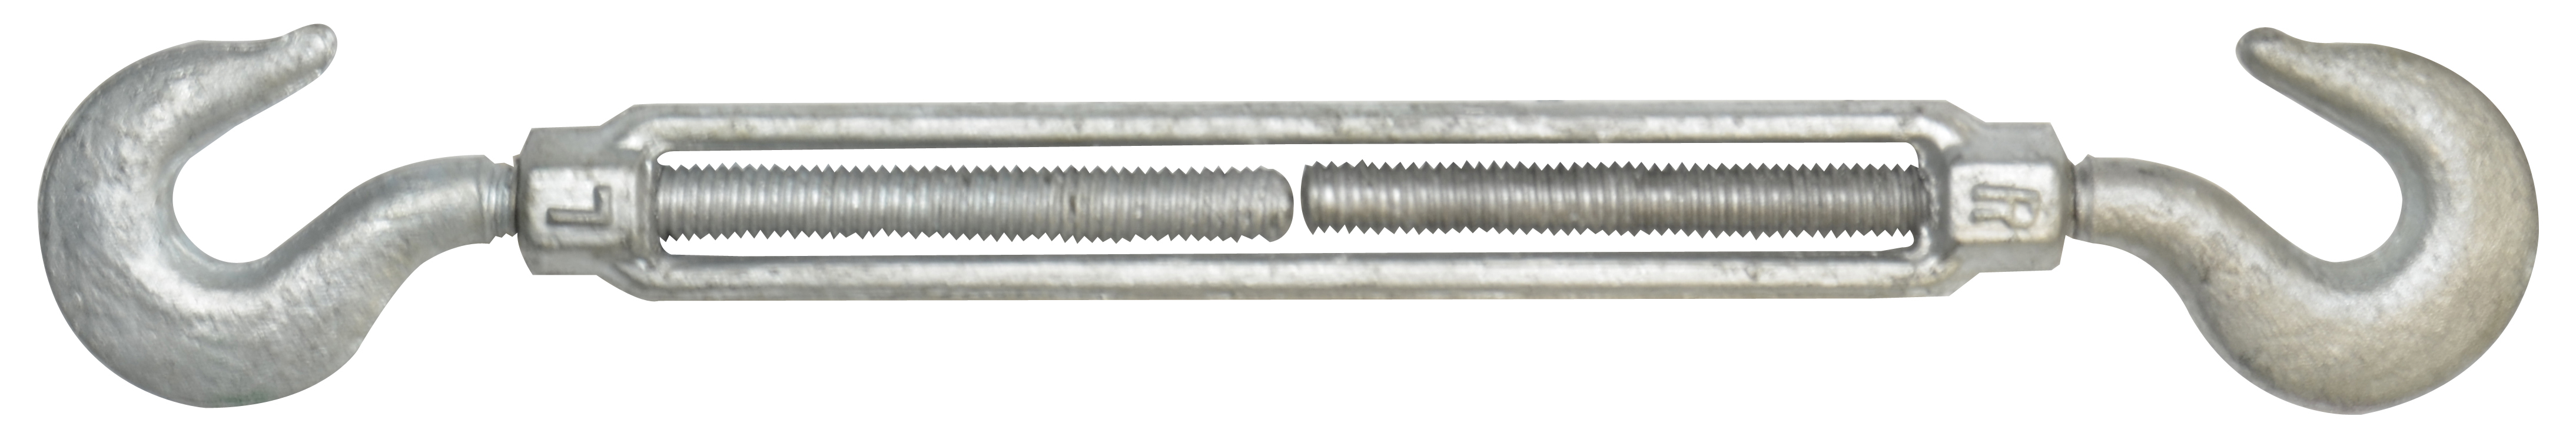 1/2 Inch x 12 Inch Hot Galvanized 1030 Carbon Steel Hook and Hook Turnbuckle